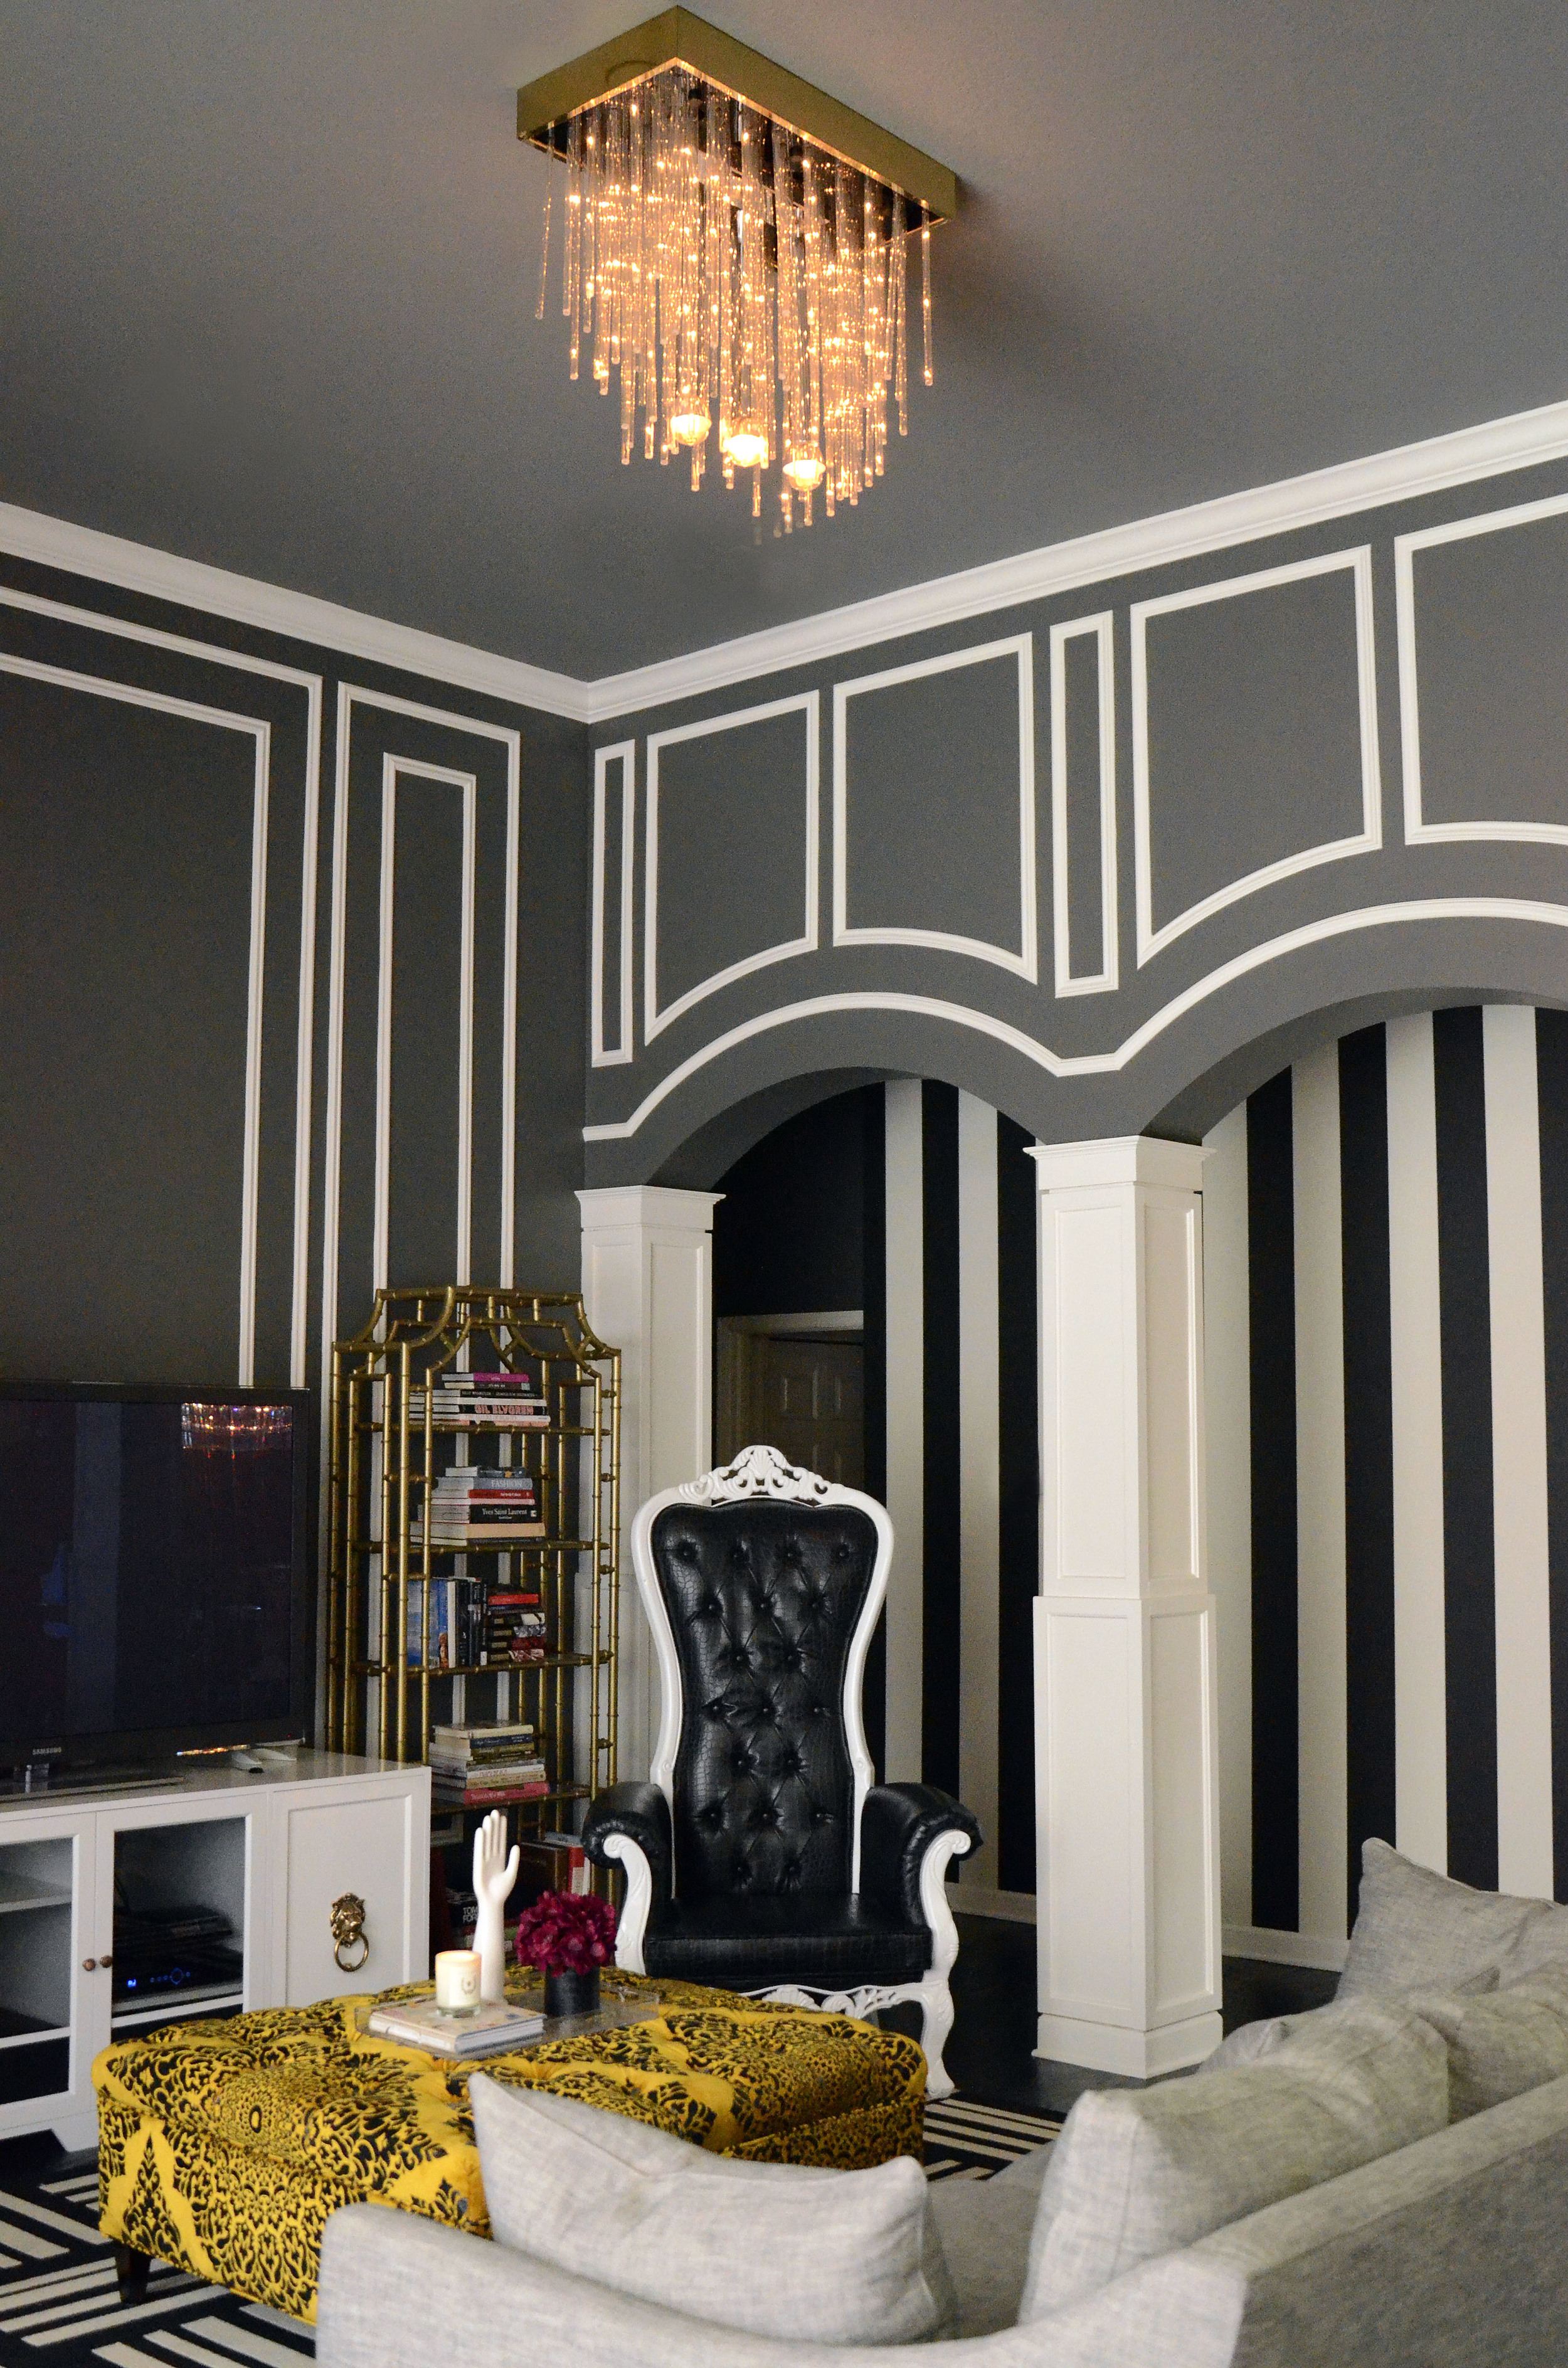 Image Credit   Maybe a little more glam and whimsical is your style? This  Hollywood Regency  inspired residence is a project that I got to have a lot of fun with stripes - and mixing different patterns in with it.